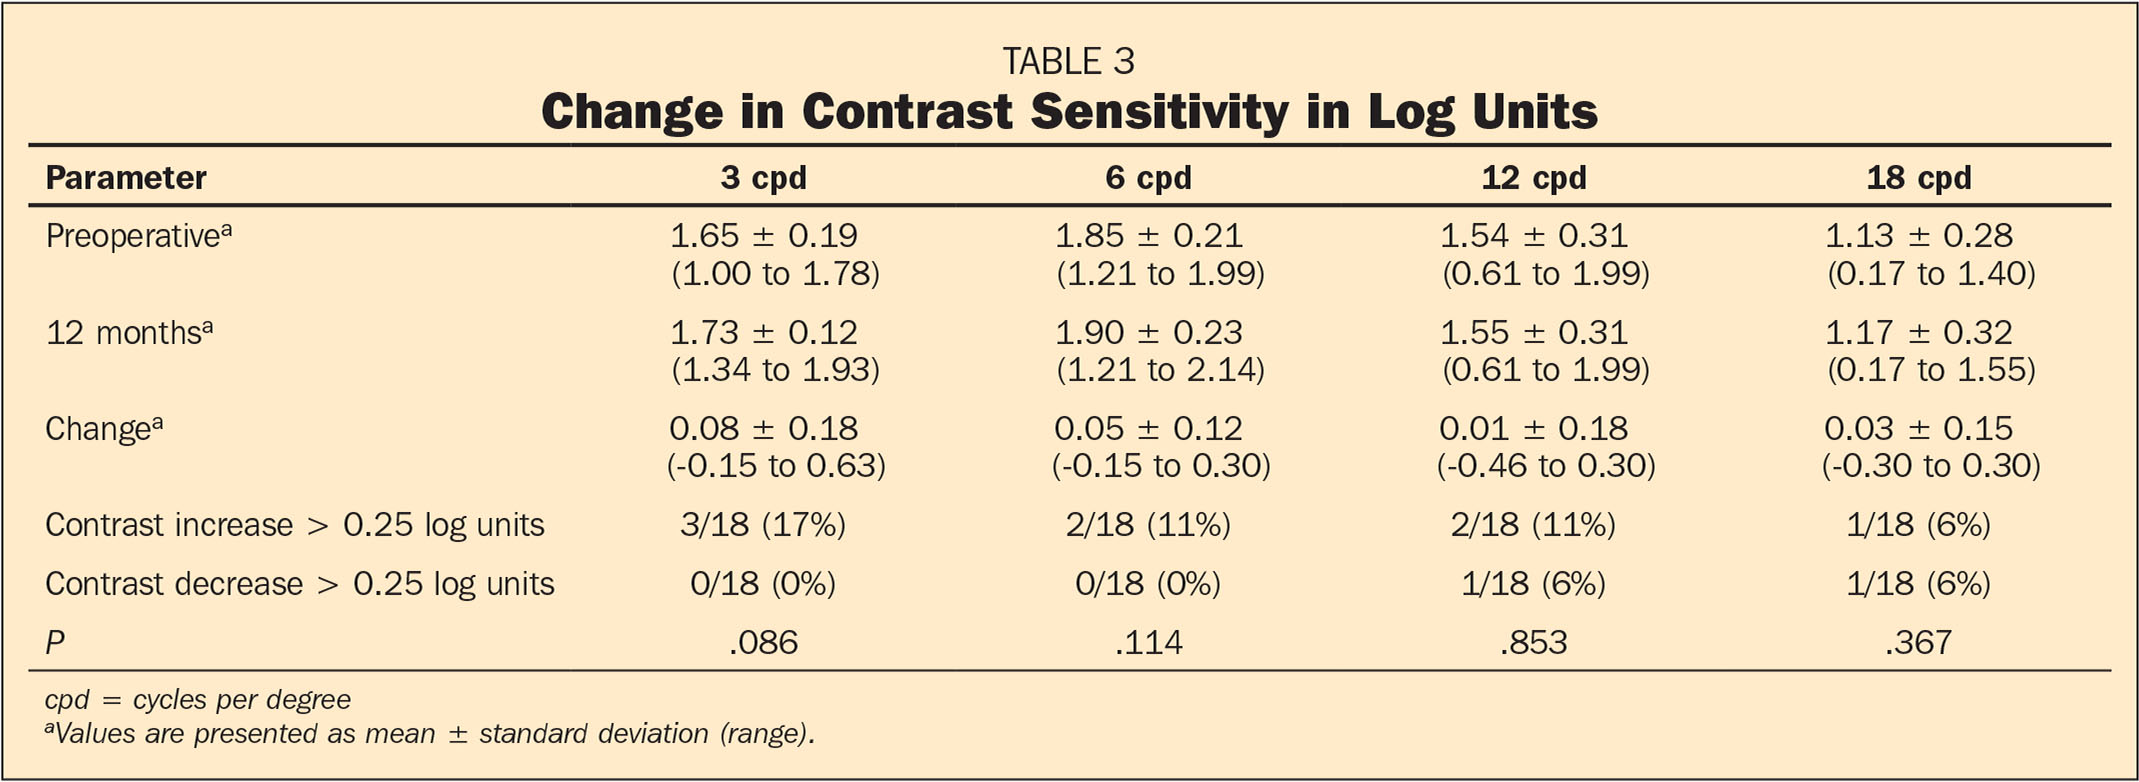 Change in Contrast Sensitivity in Log Units